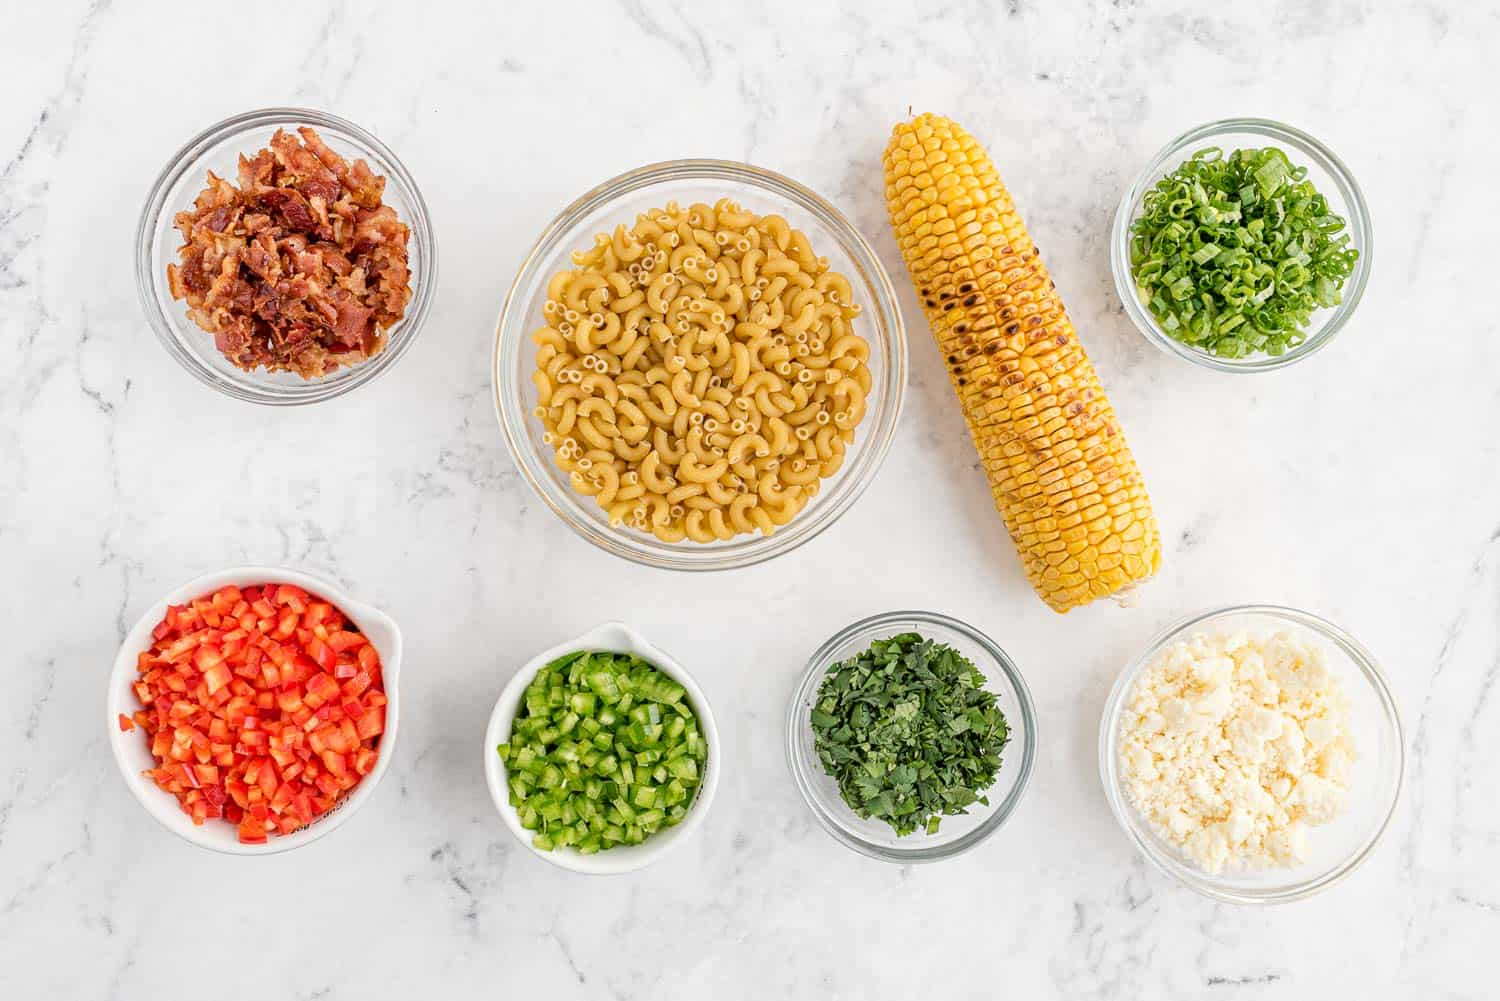 Overhead view of ingredients needed for salad.